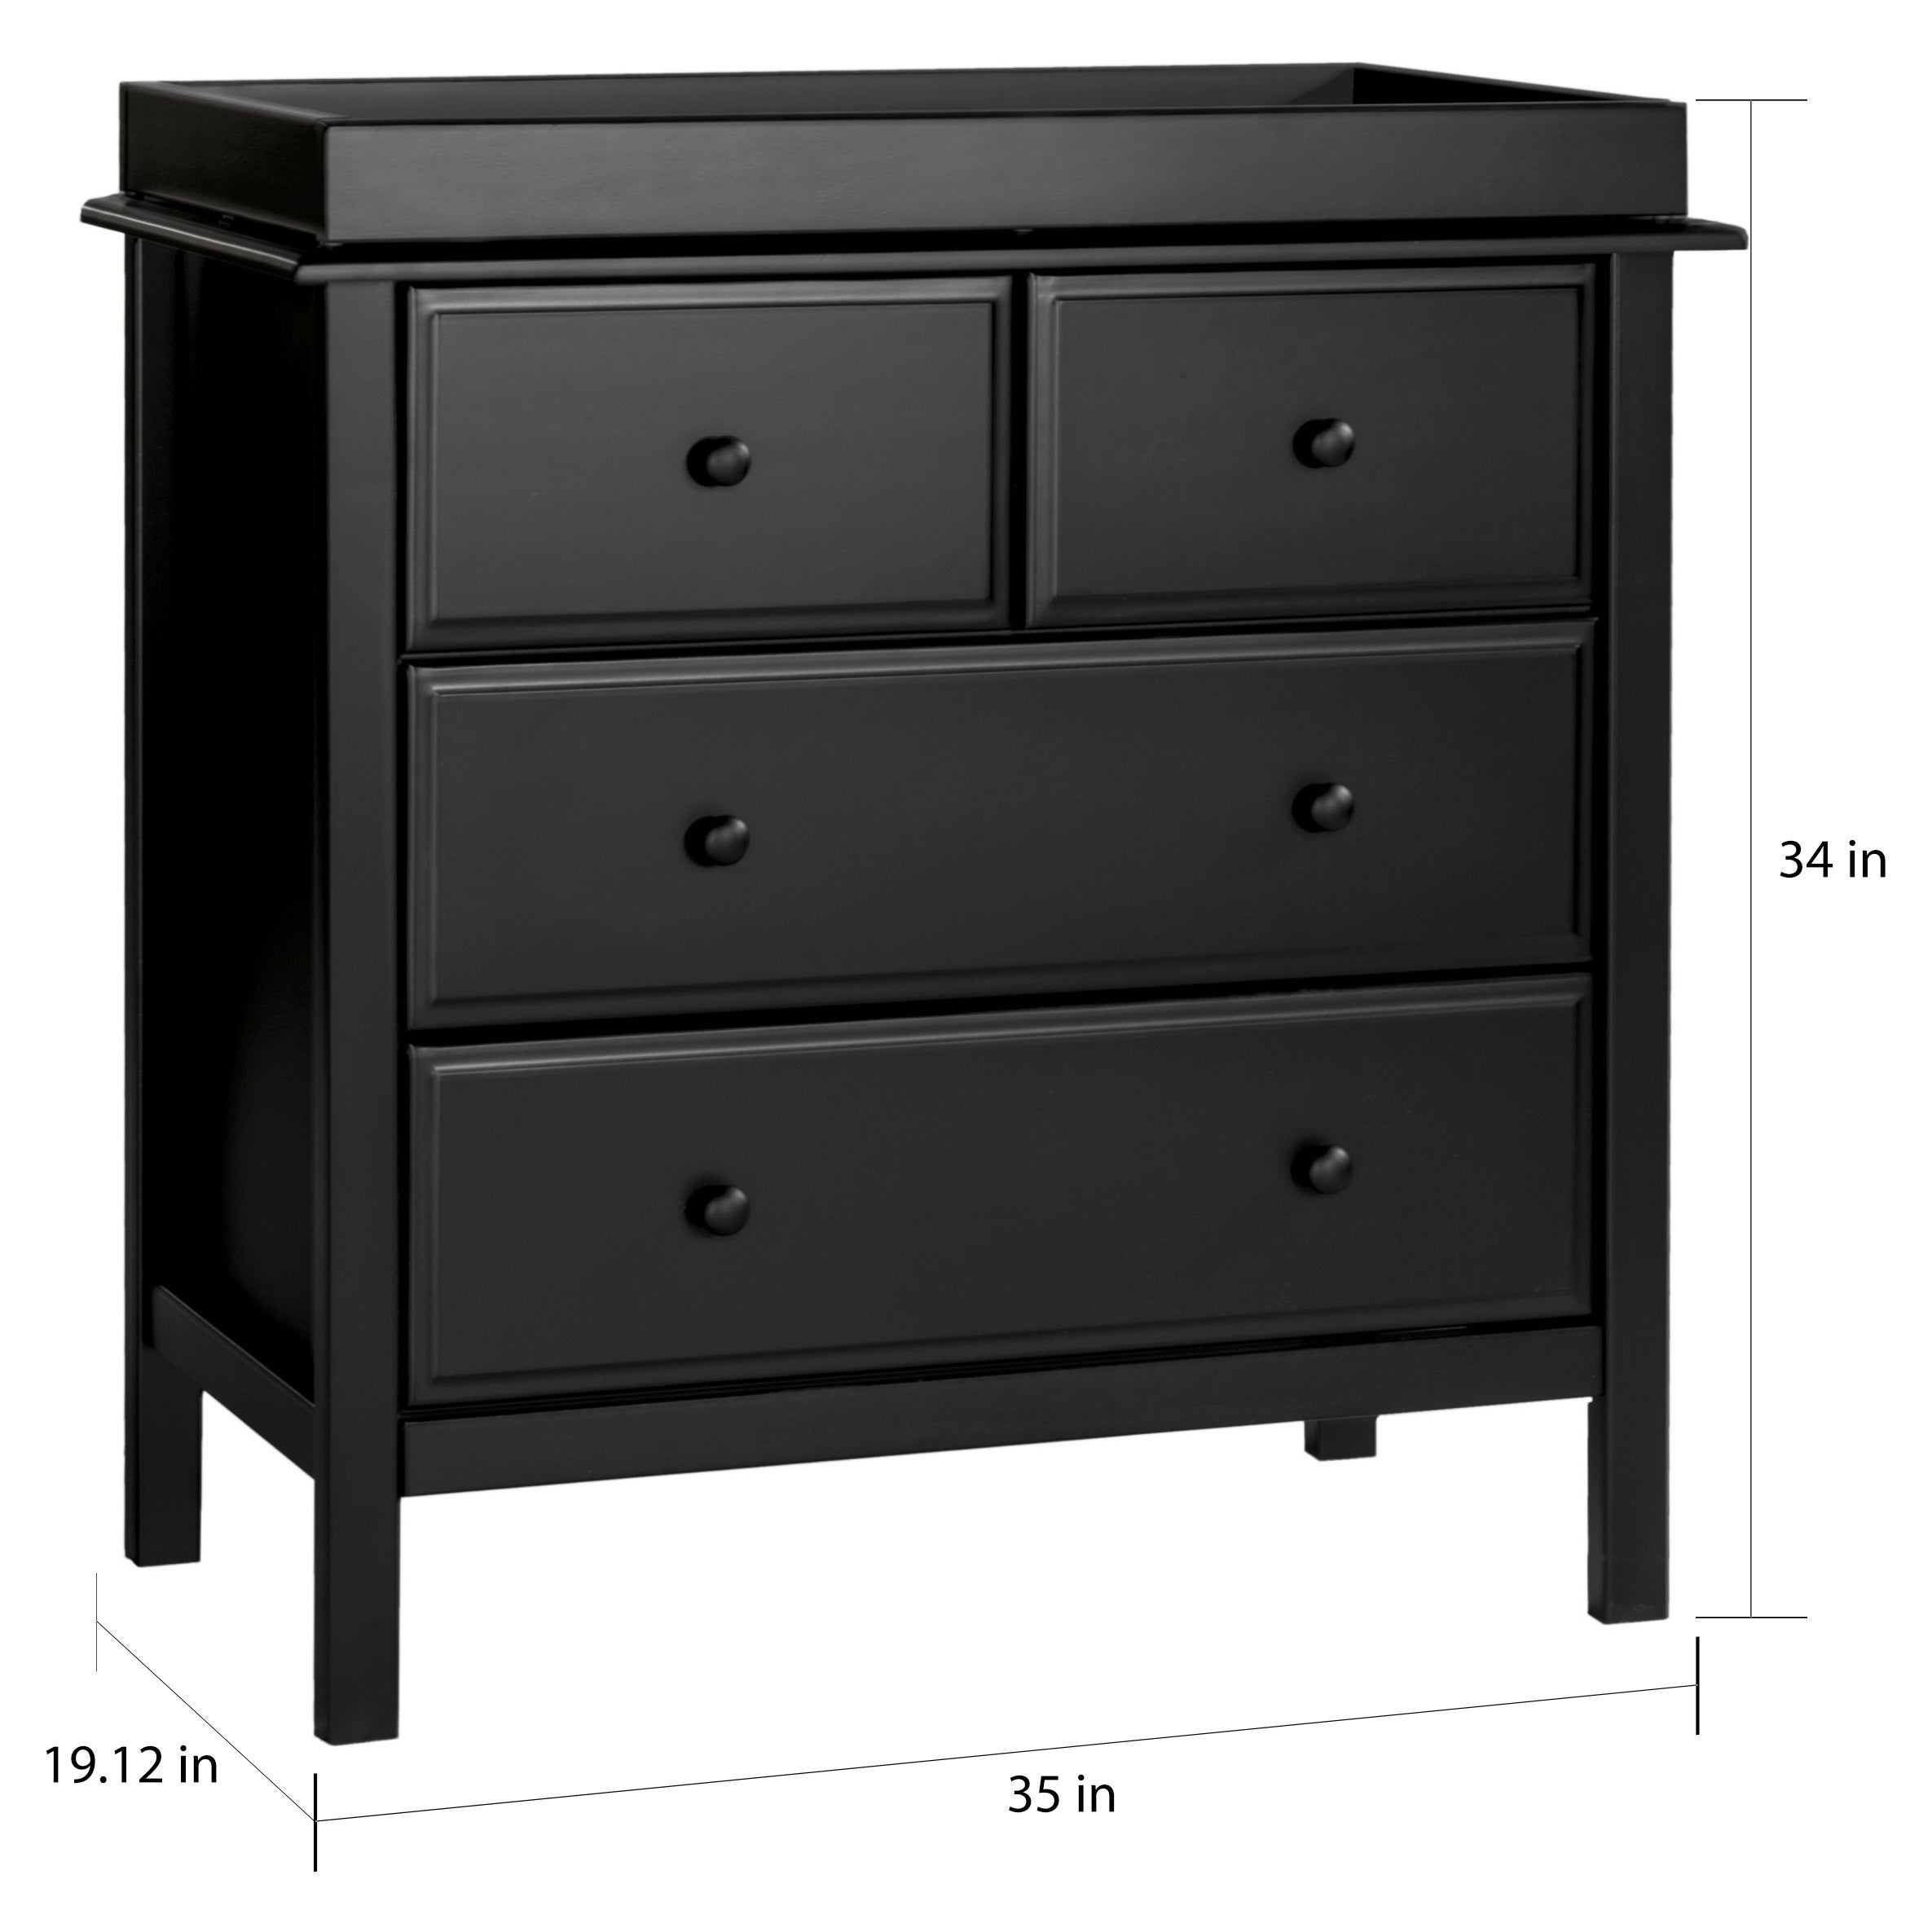 rae tyrel drawer kids wayfair davinci pdx double reviews dresser viv kalani baby